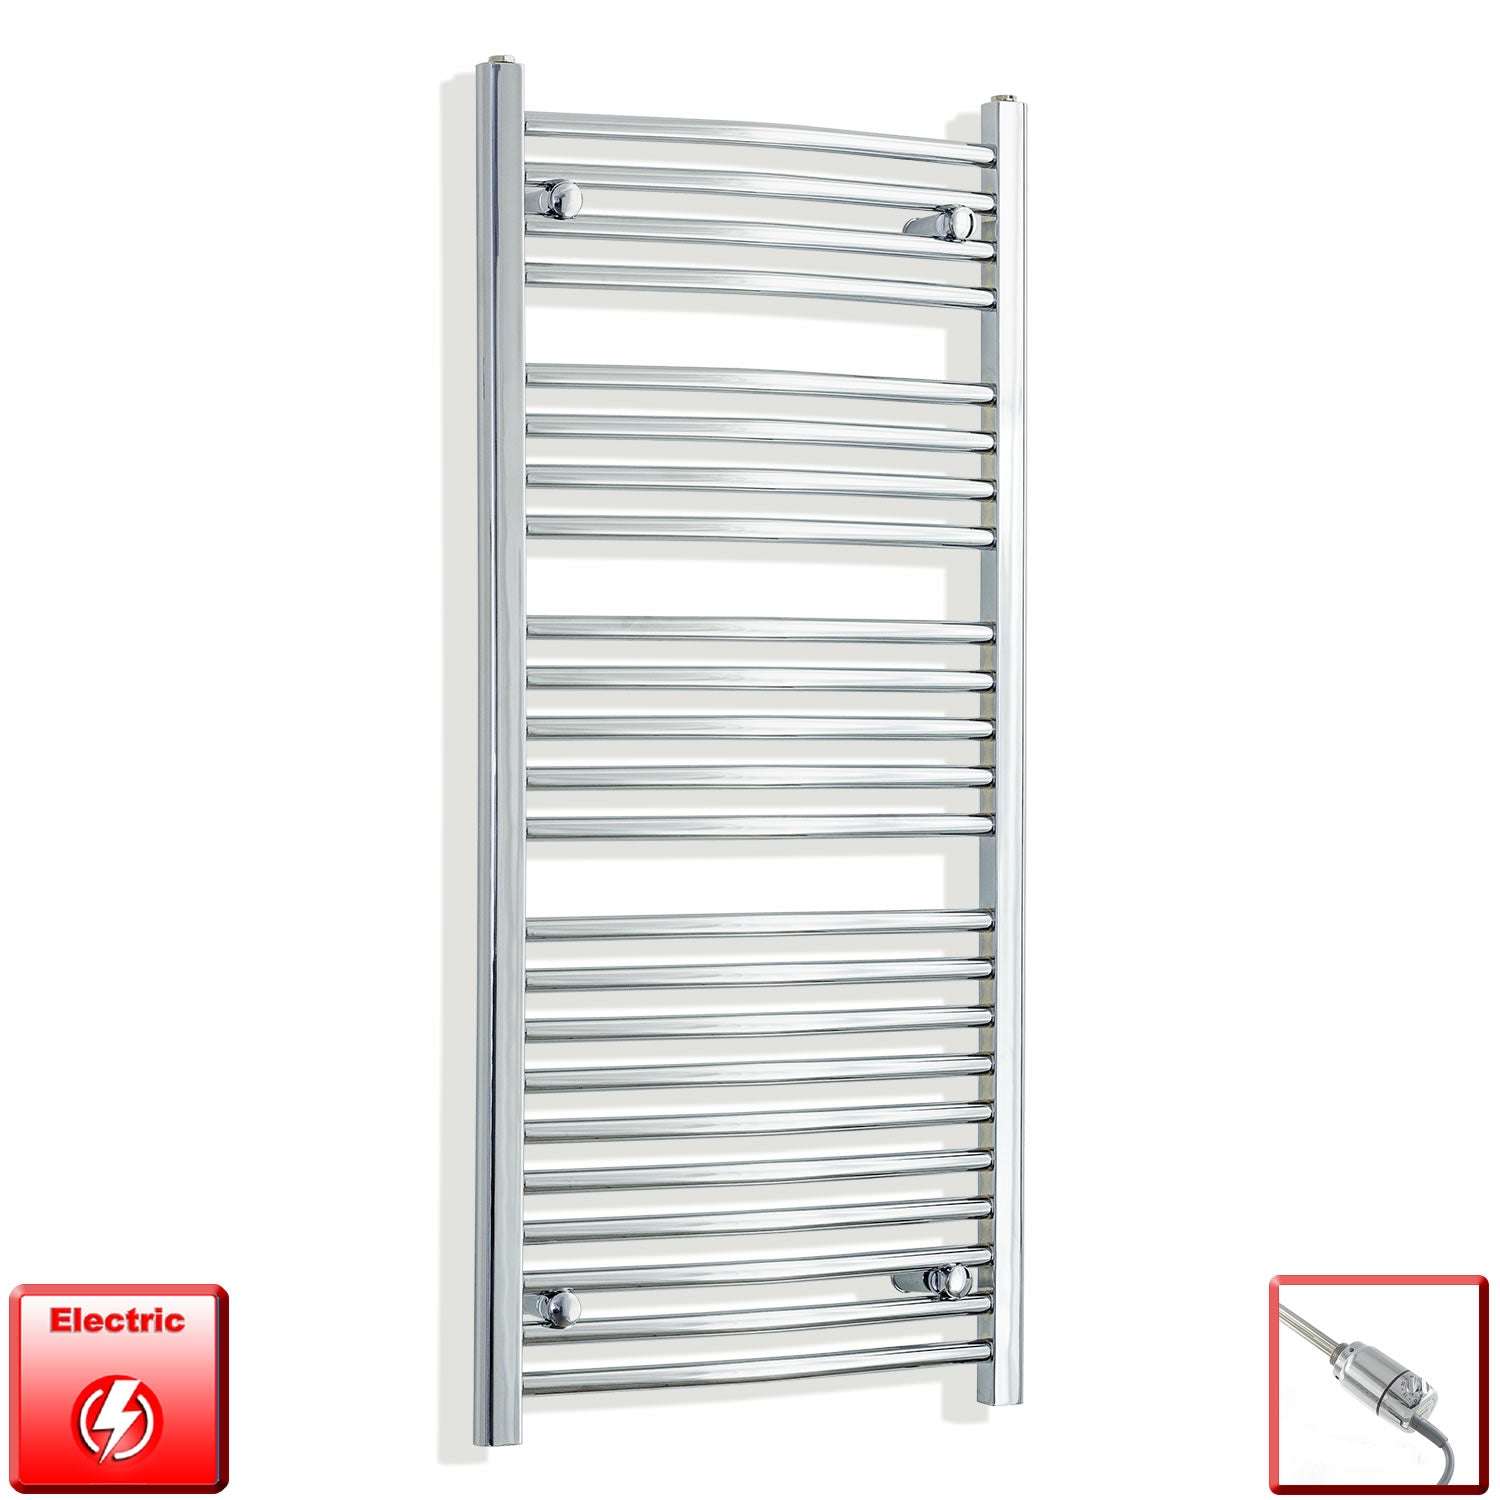 550 x 1200 Curved Chrome Heated Towel Rail Radiator Gas or Electric,Pre-Filled Thermostatic Element